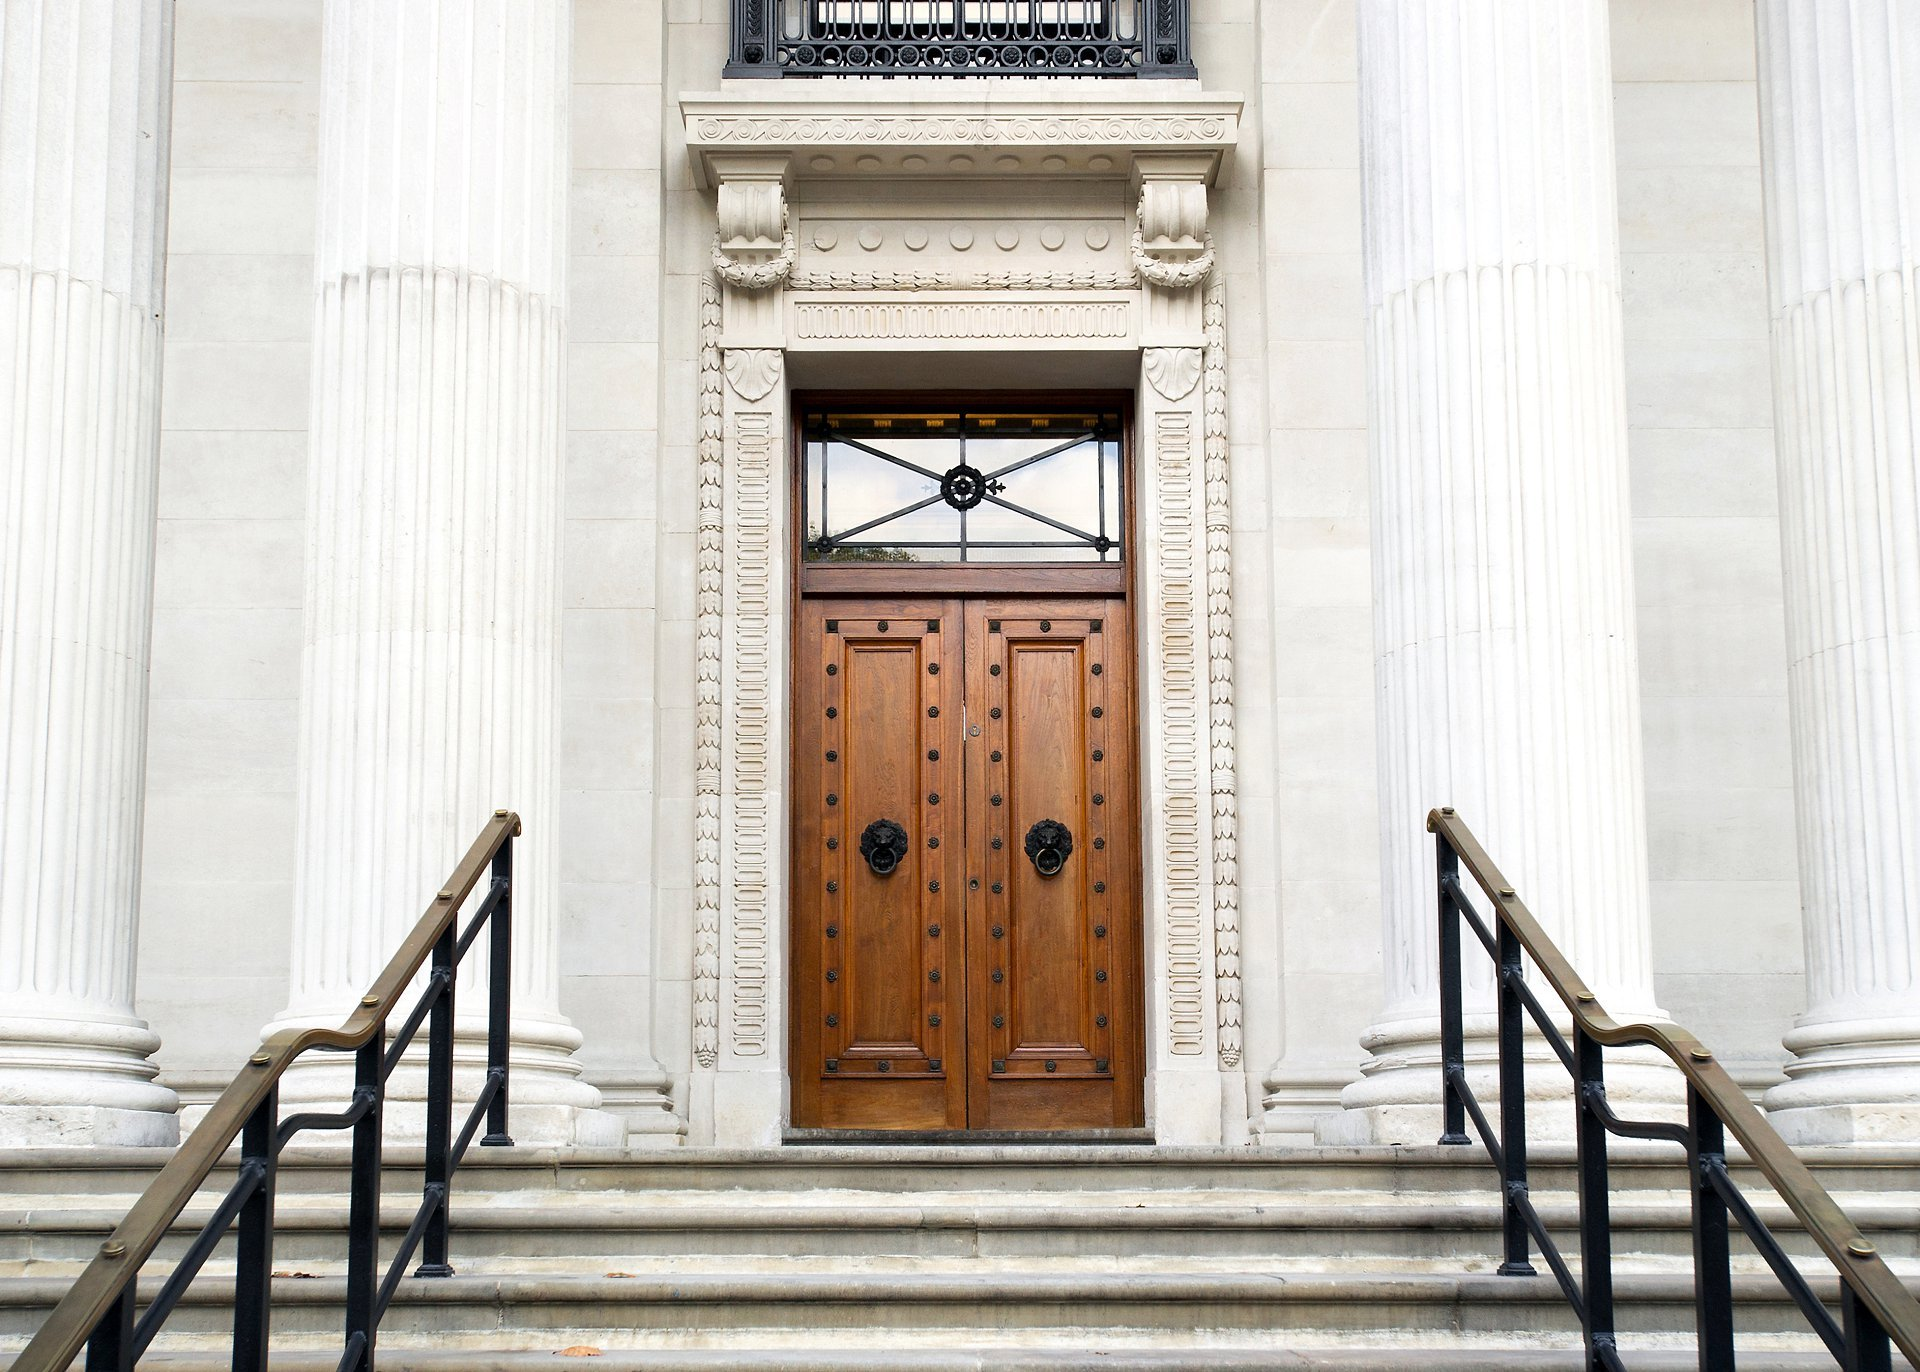 Old Marylebone Town Hall main steps leading to wooden doors after major refurbishments in 2017